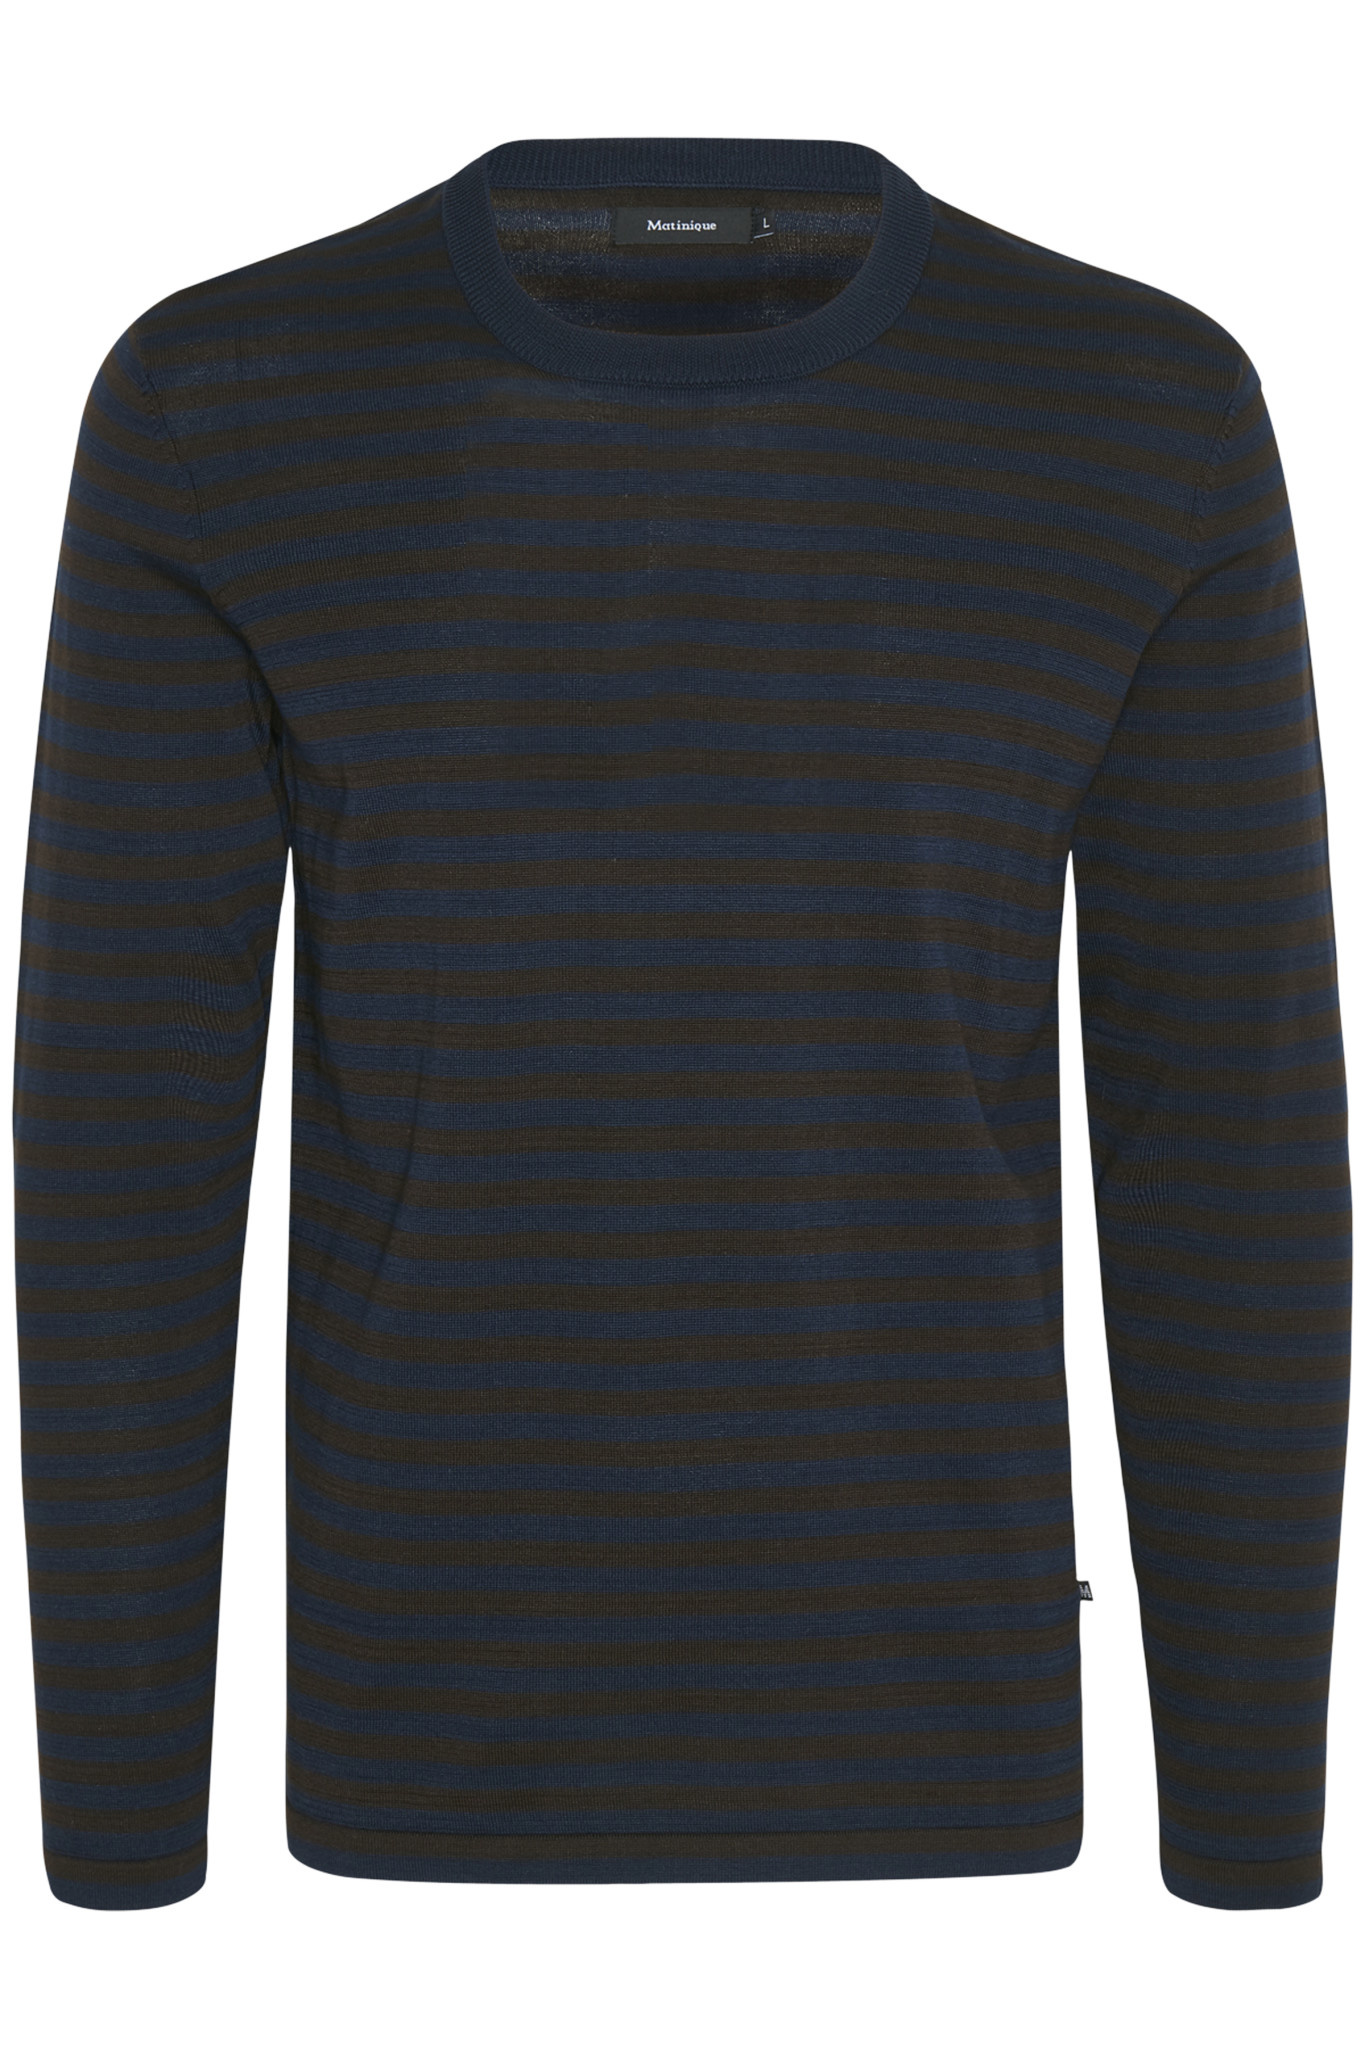 Cotton Pullover Sweater